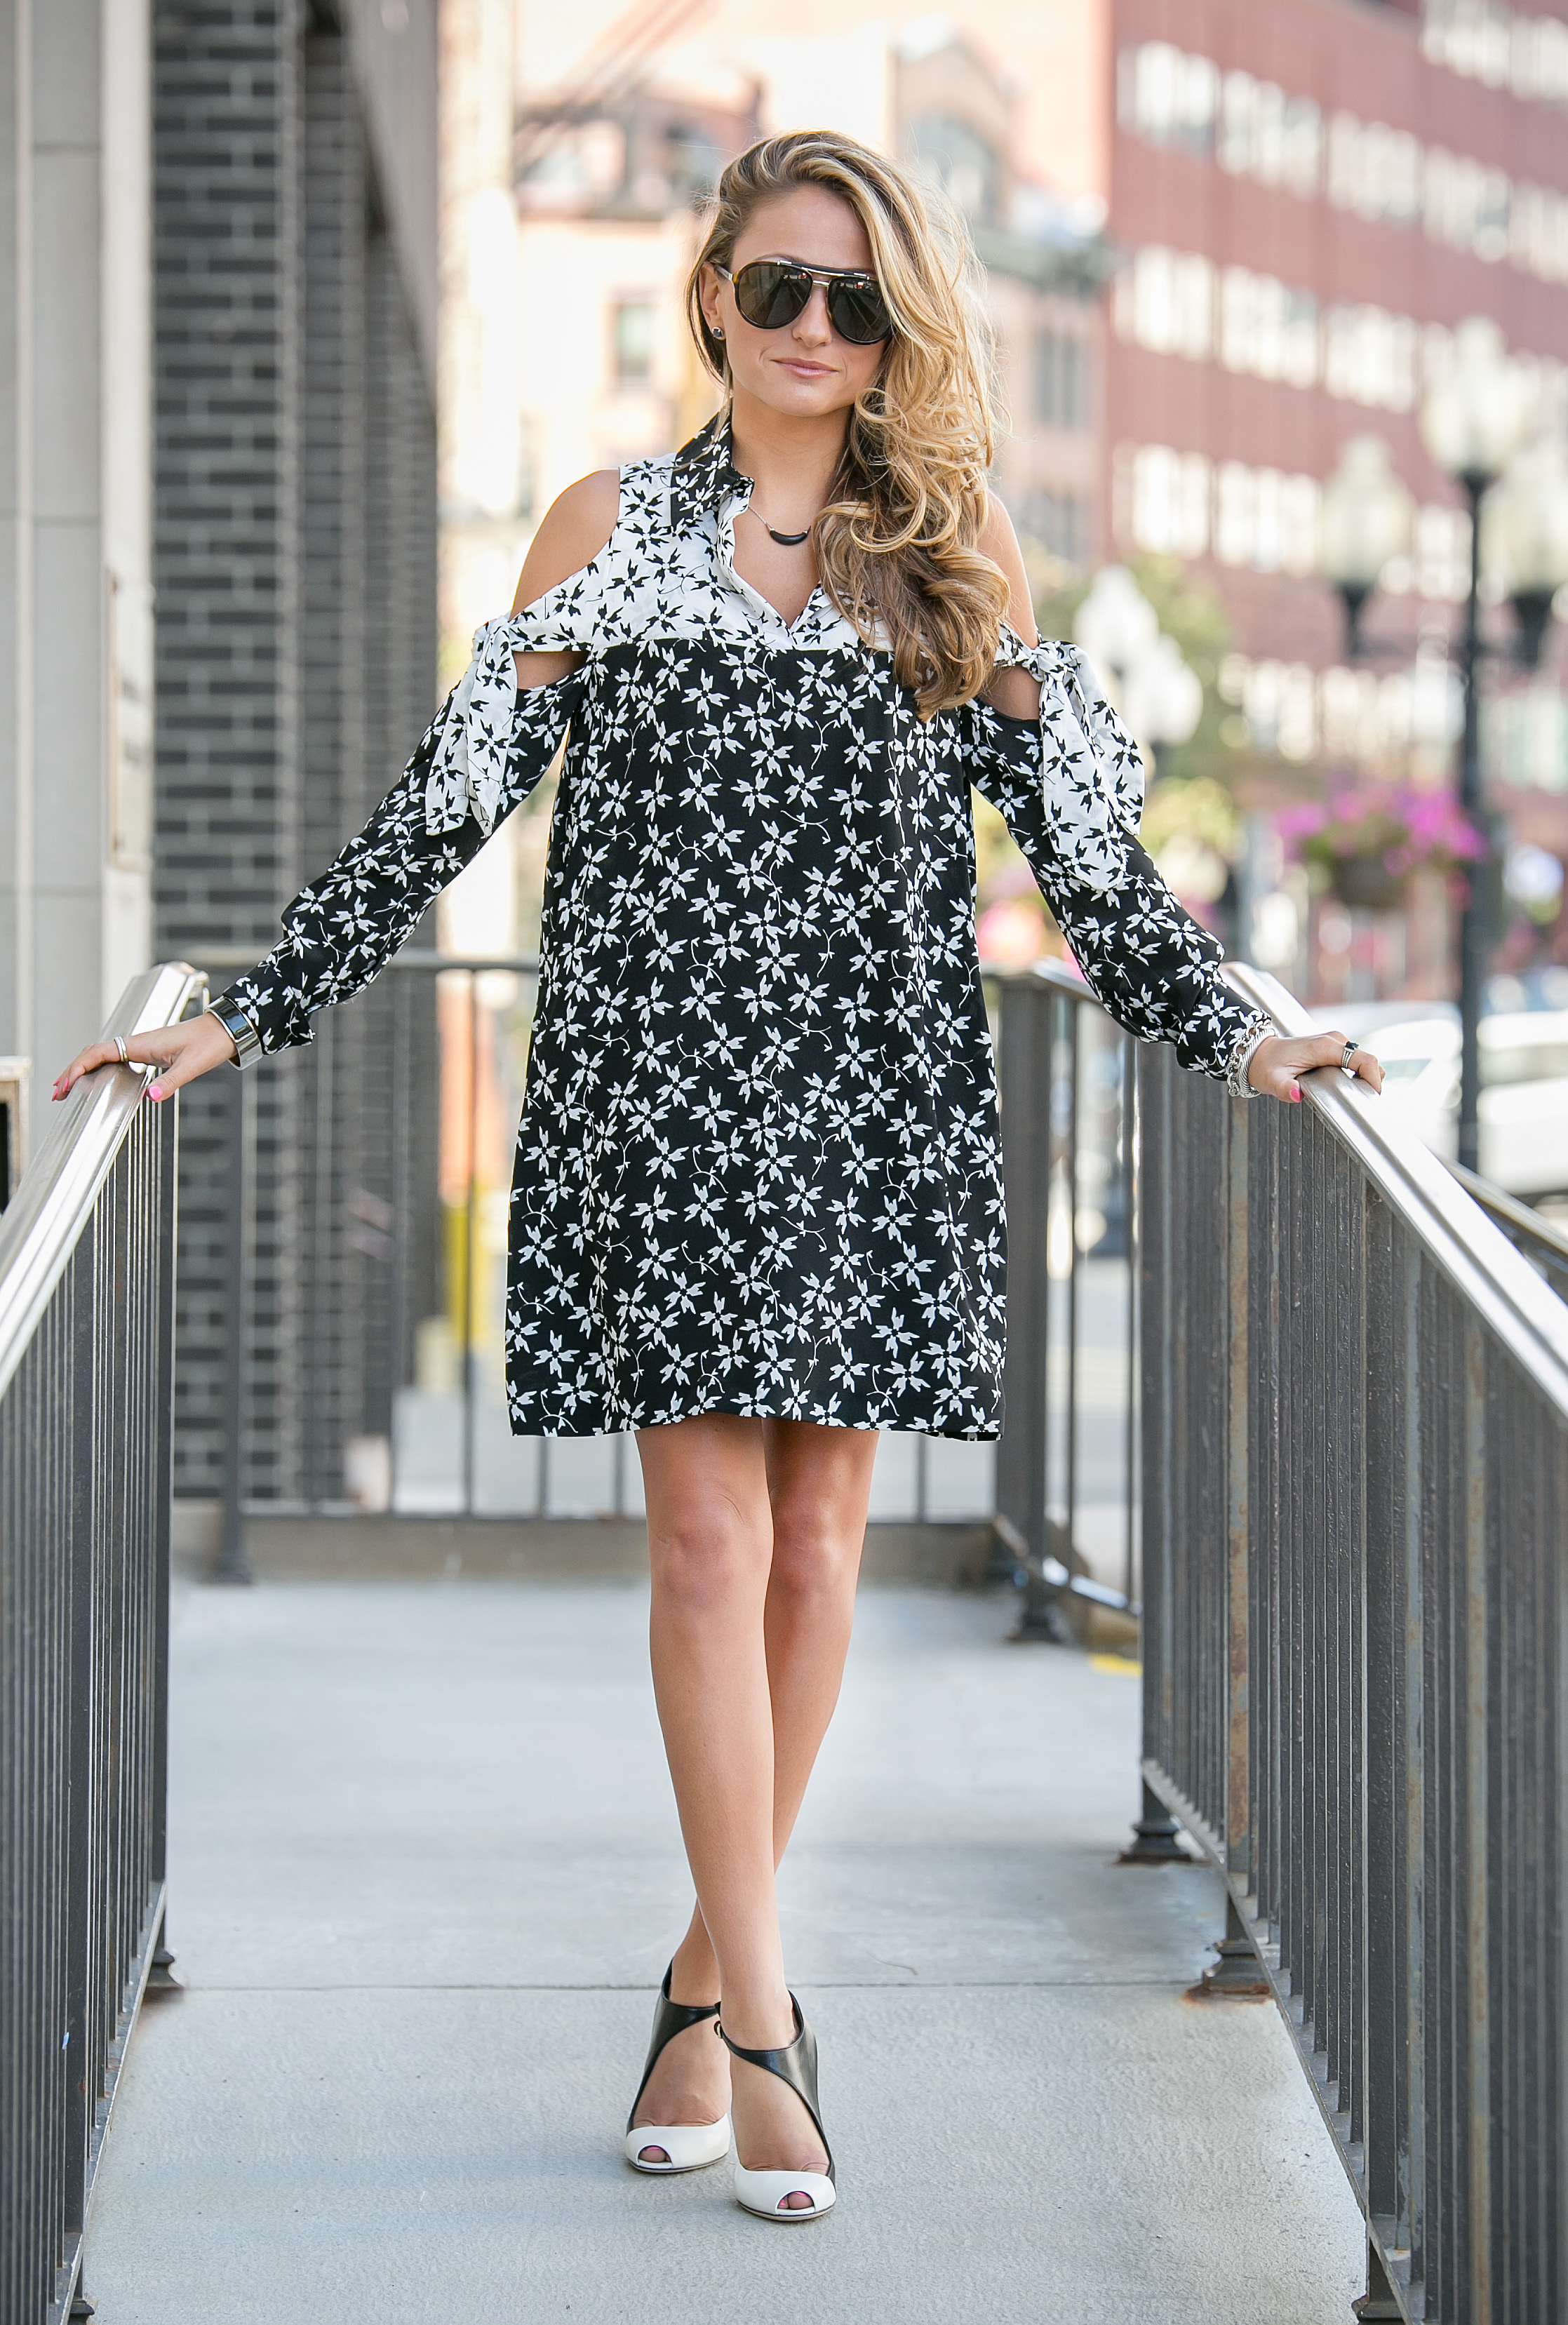 Fashionista Lauren Recchia of North of Manhattan wearing a Tanya Taylor print dress with black and white Sergio Rossi pumps